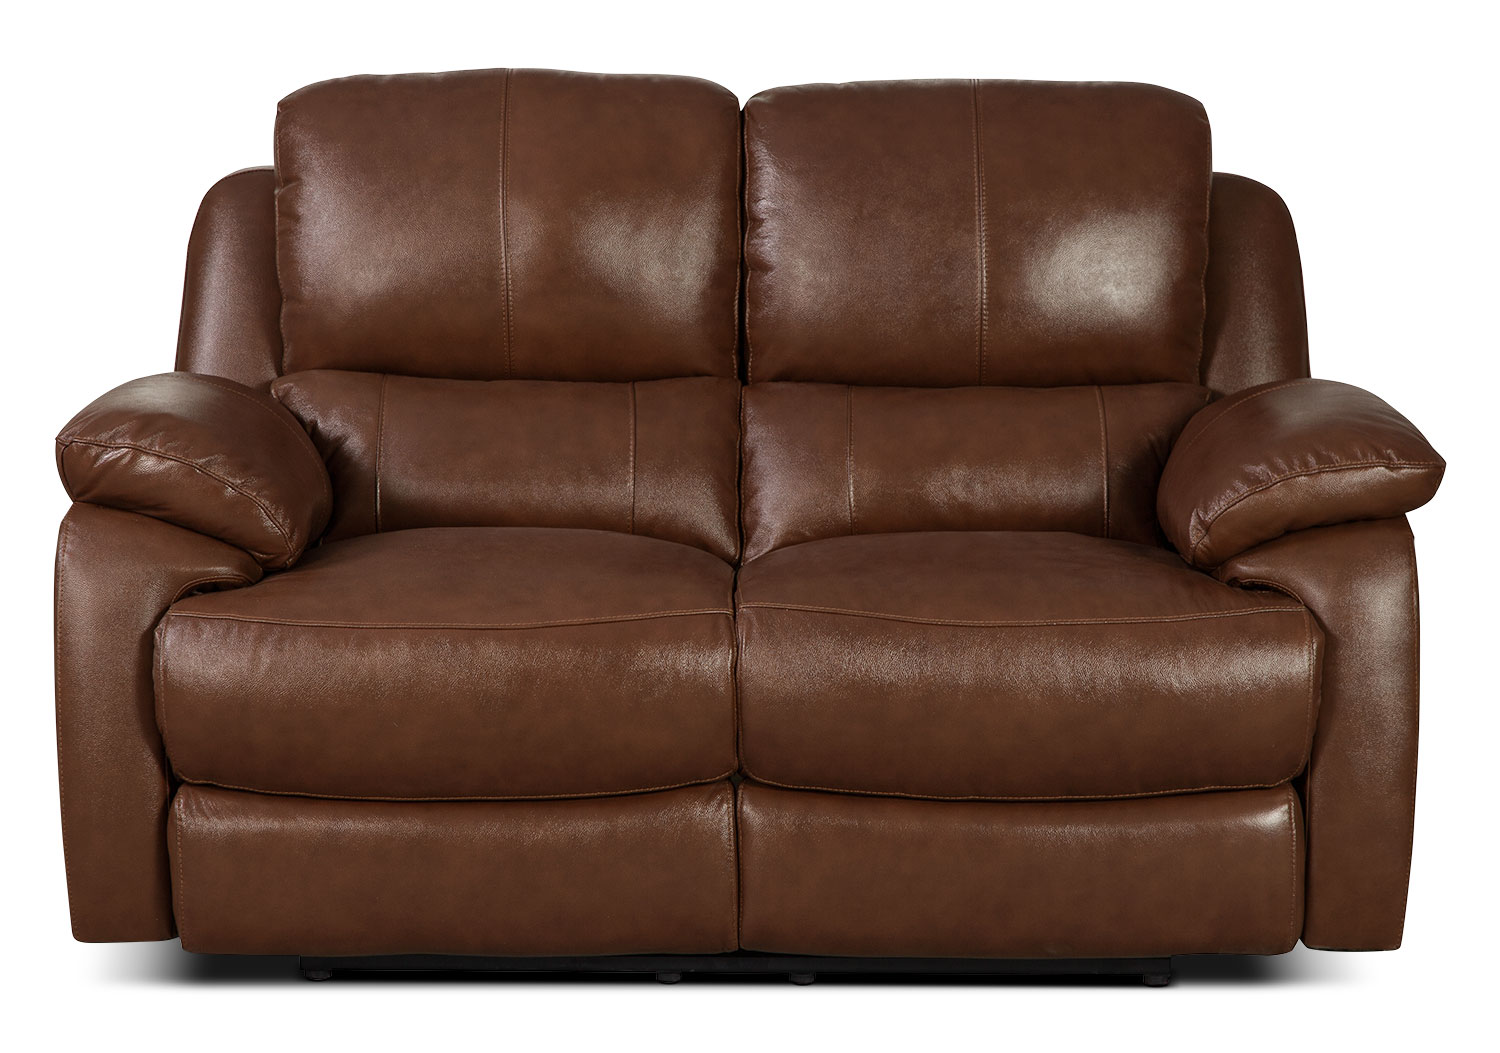 Cairo Genuine Leather Reclining Loveseat – Brown